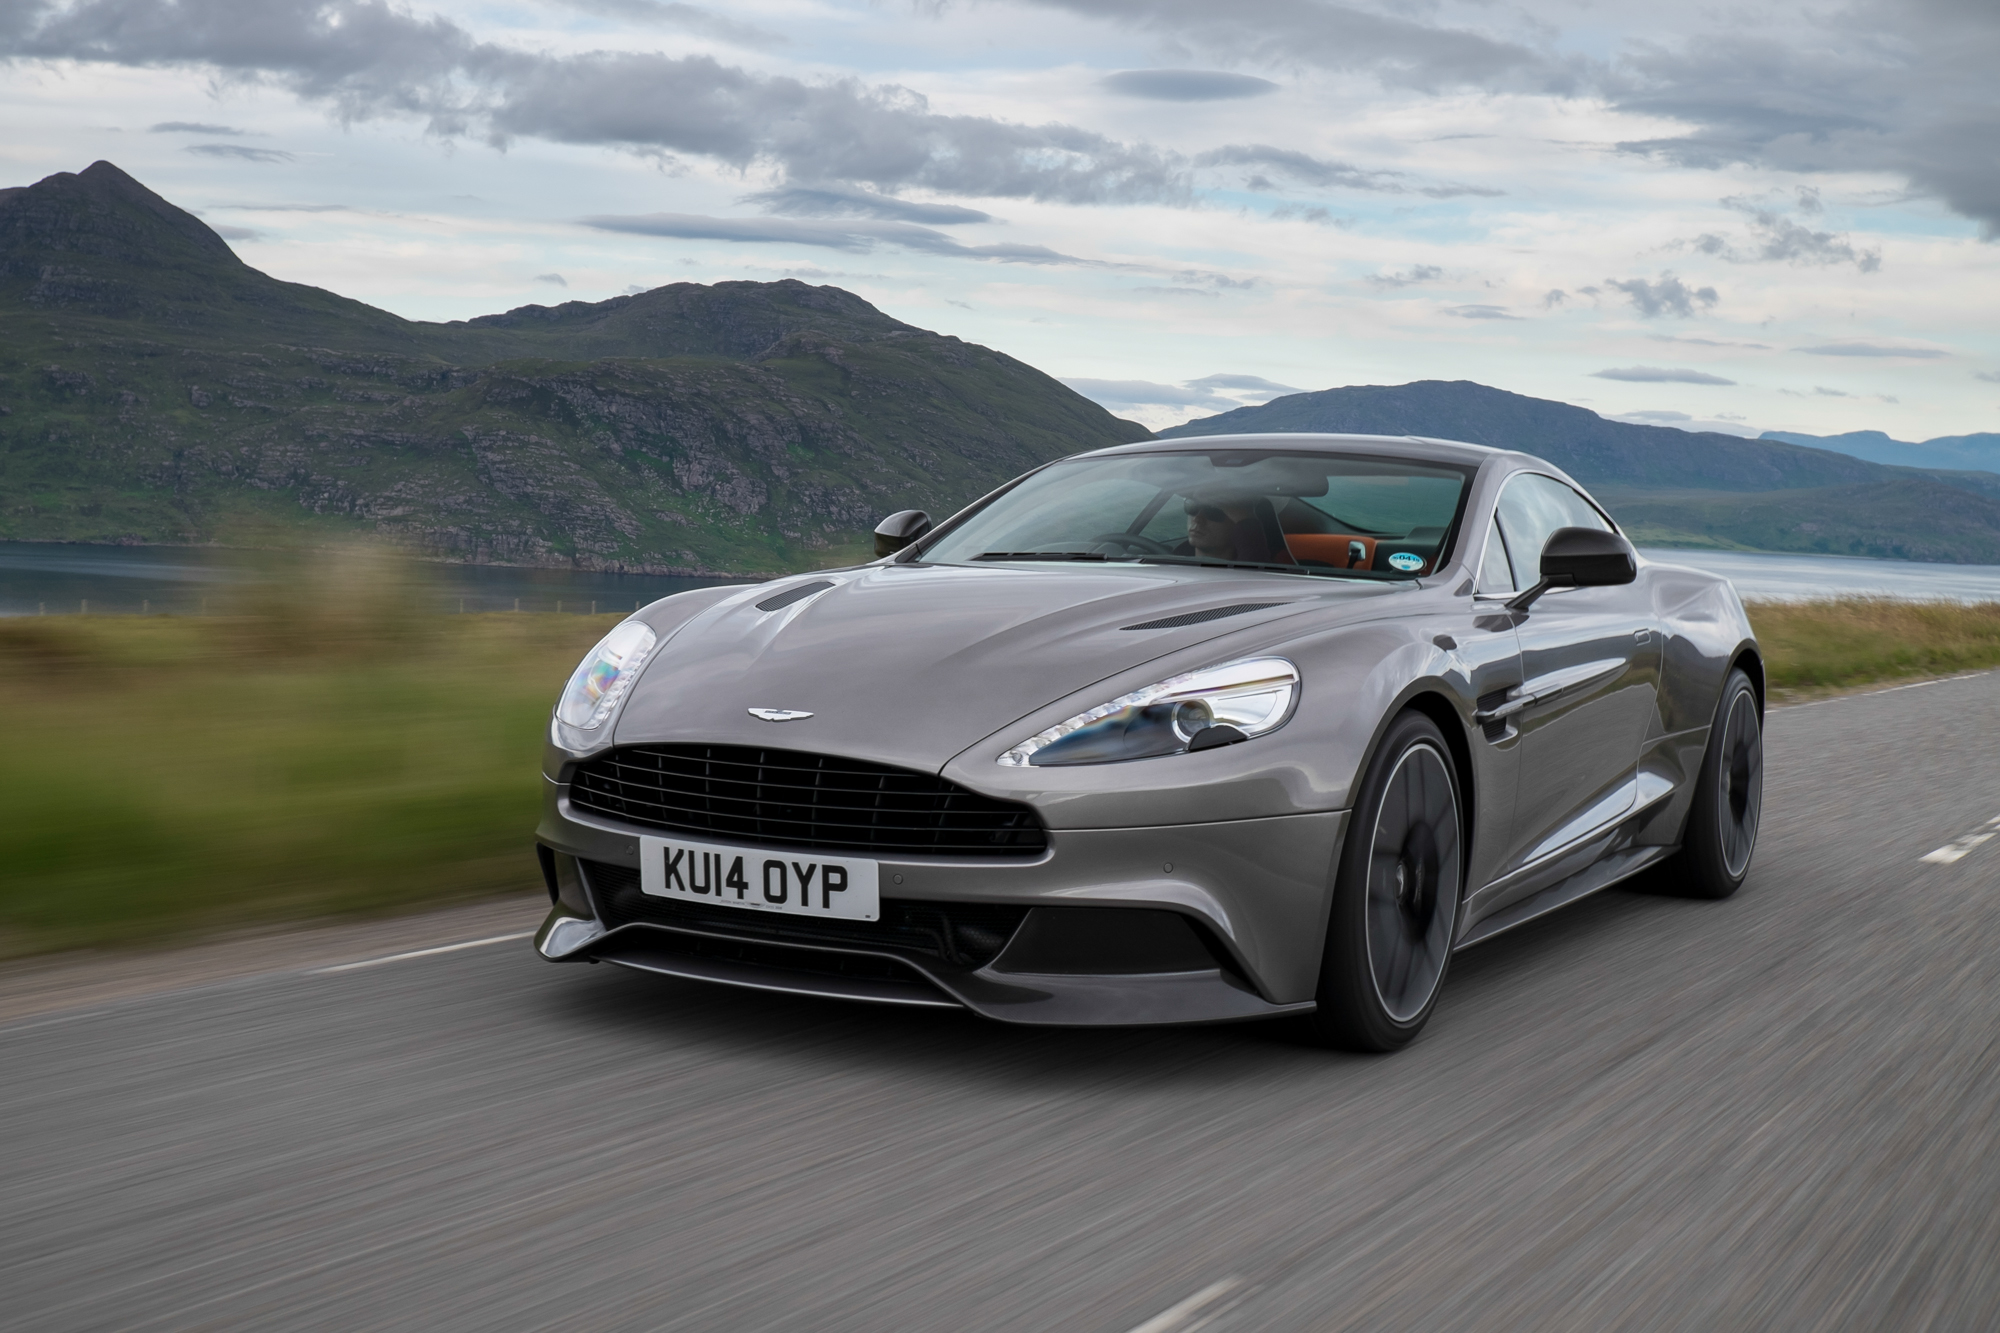 2015 aston martin vanquish review ratings specs prices. Black Bedroom Furniture Sets. Home Design Ideas